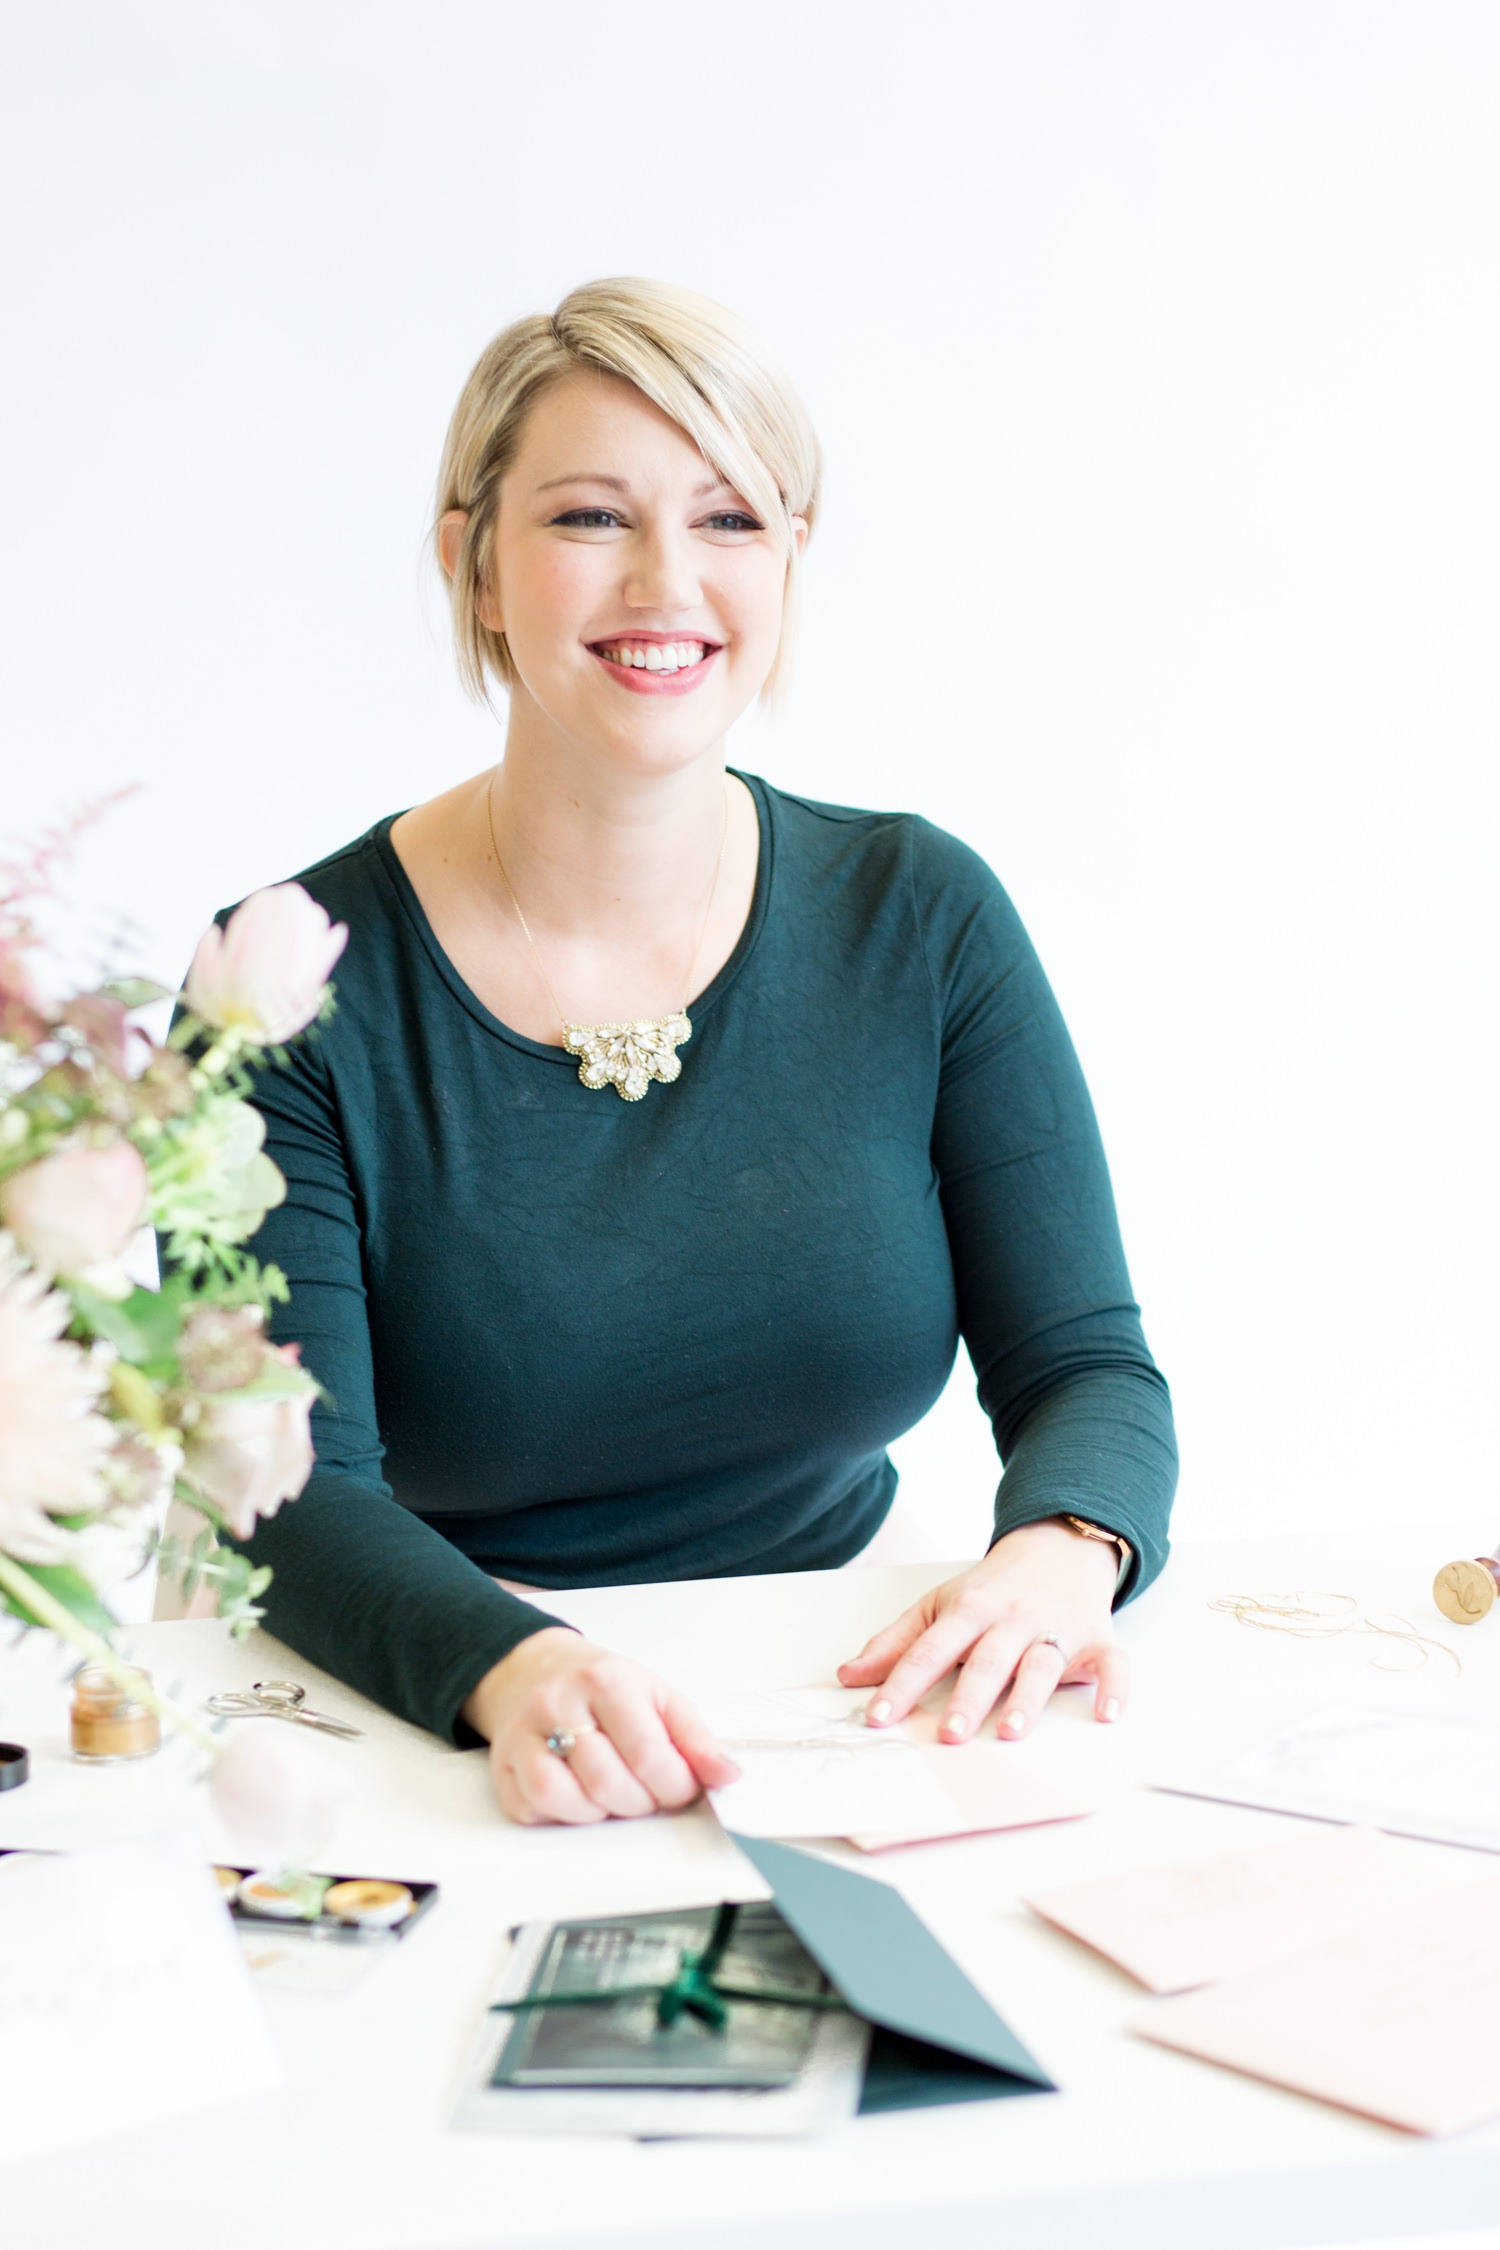 Personal Branding photoshoot. creative at her desk